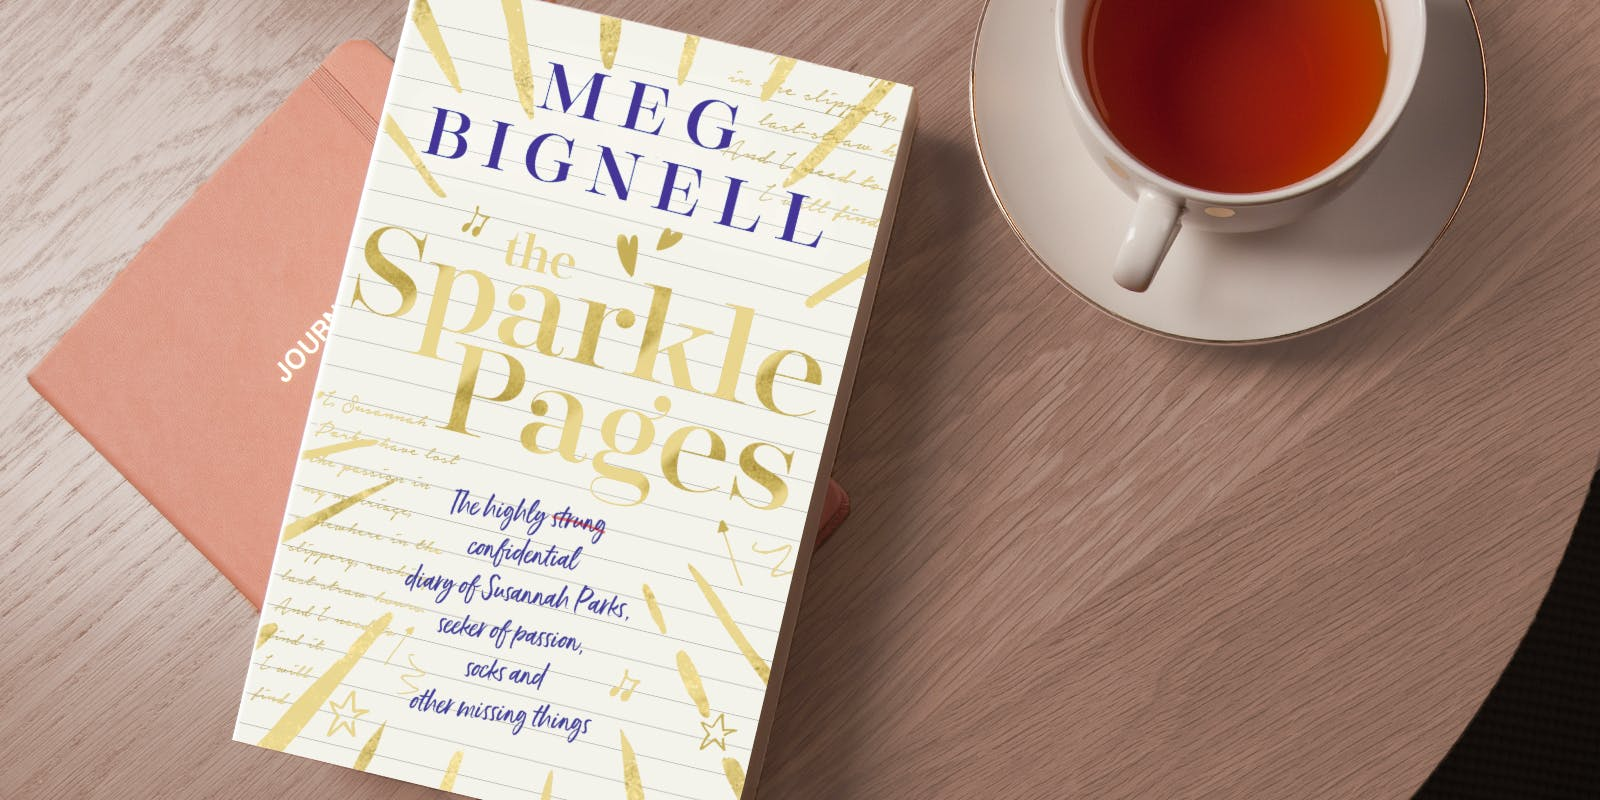 The Sparkle Pages book club notes